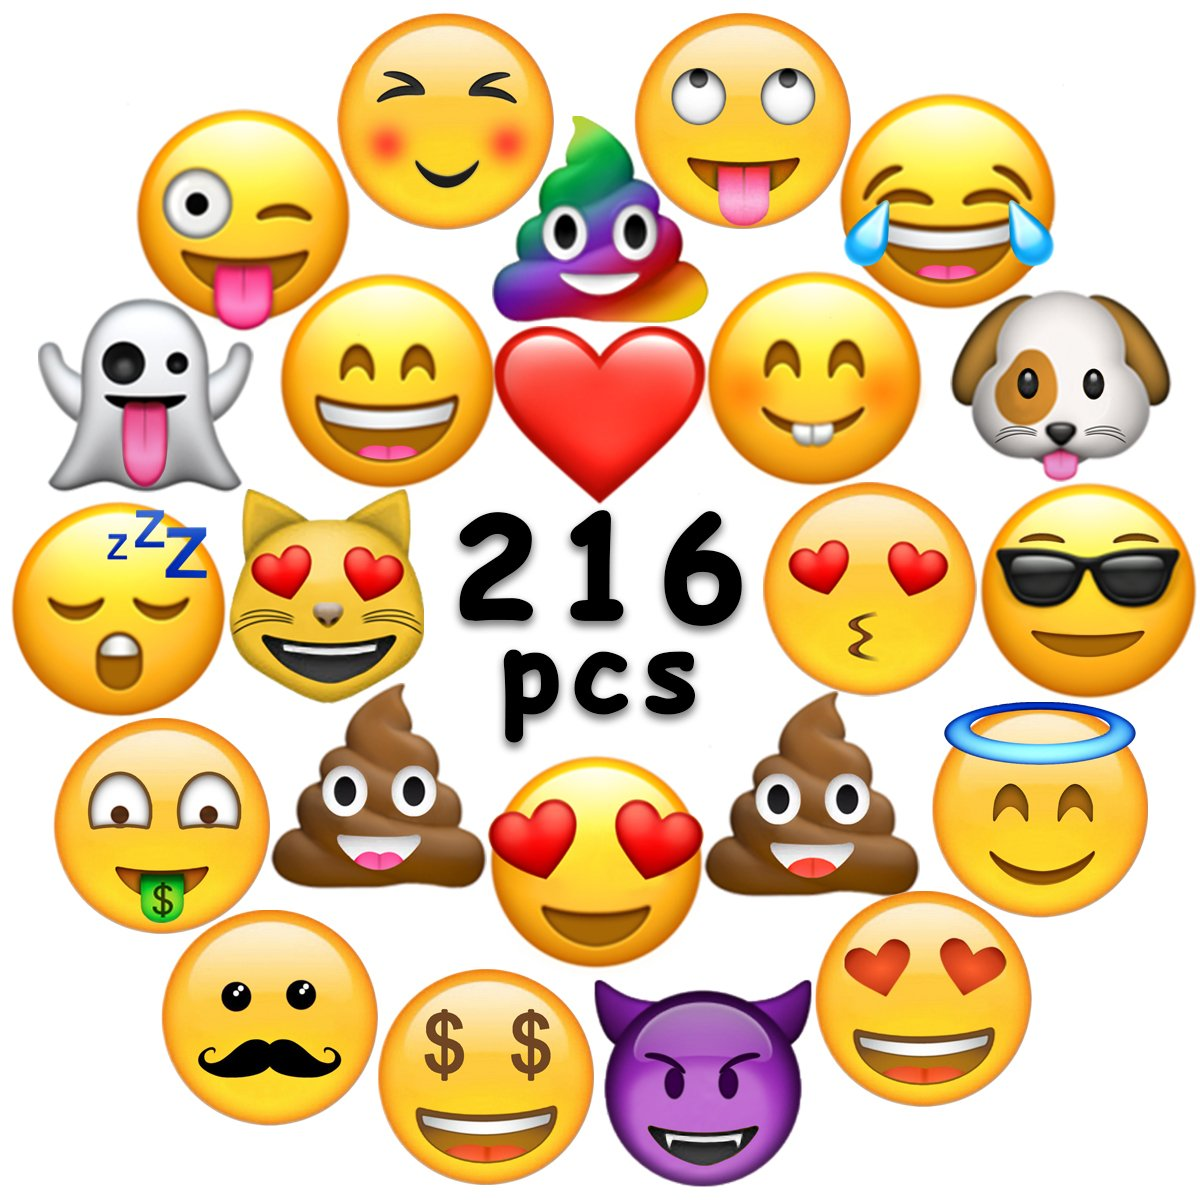 Ivenf Extra Large Fun Emoji Face Stickers, Teacher Reward Stickers for Prizes, Kids Party Supplies Favors Decoration Games, 36 Sheets 216 Pcs